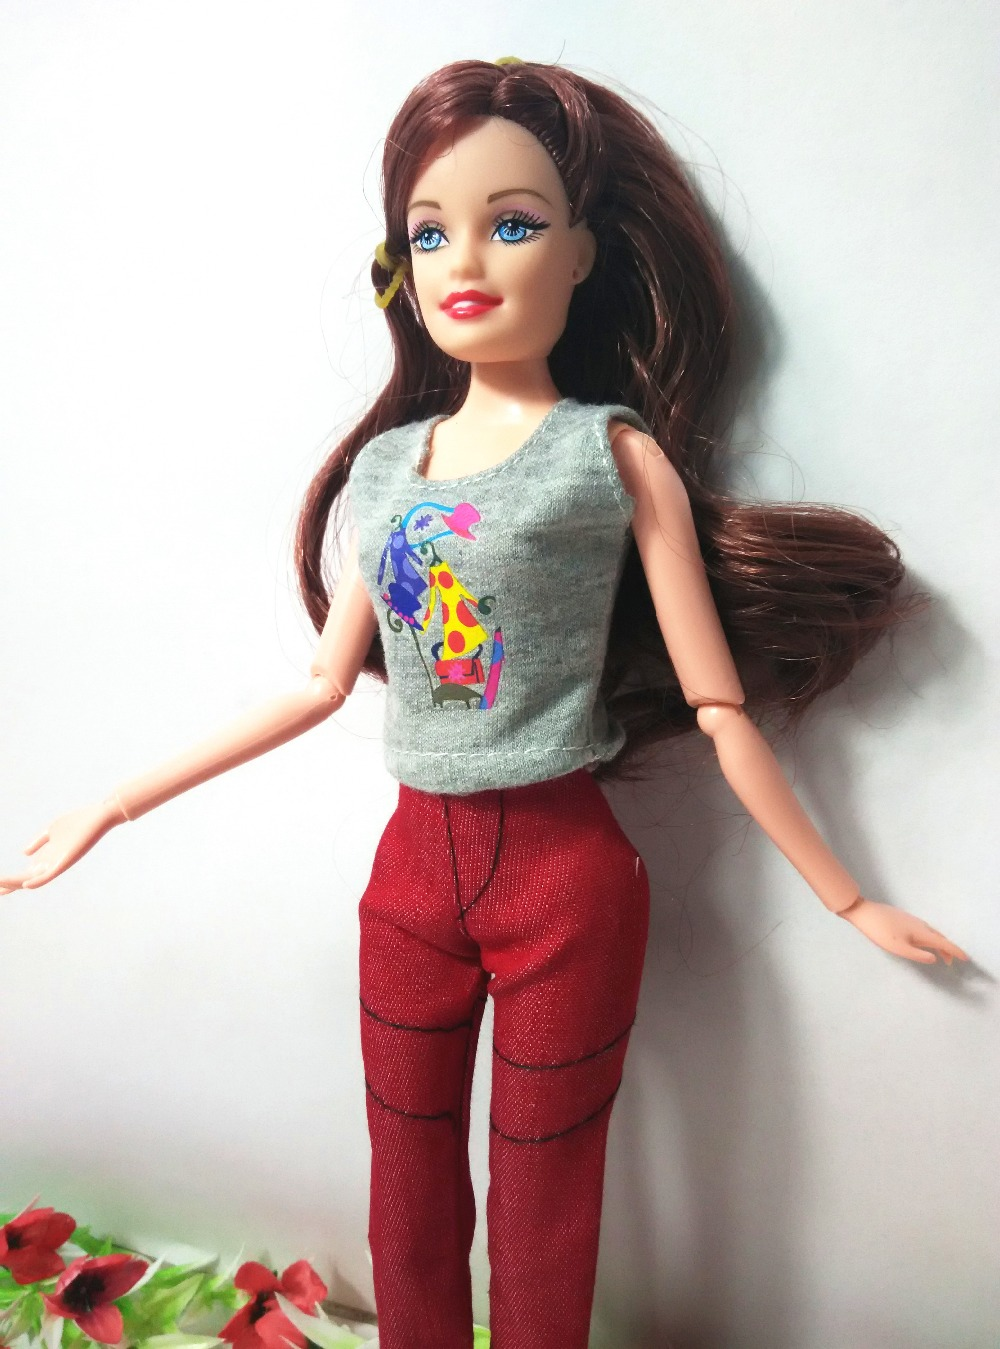 Best Barbie Dolls And Toys : Newest doll outfit beautiful handmade party